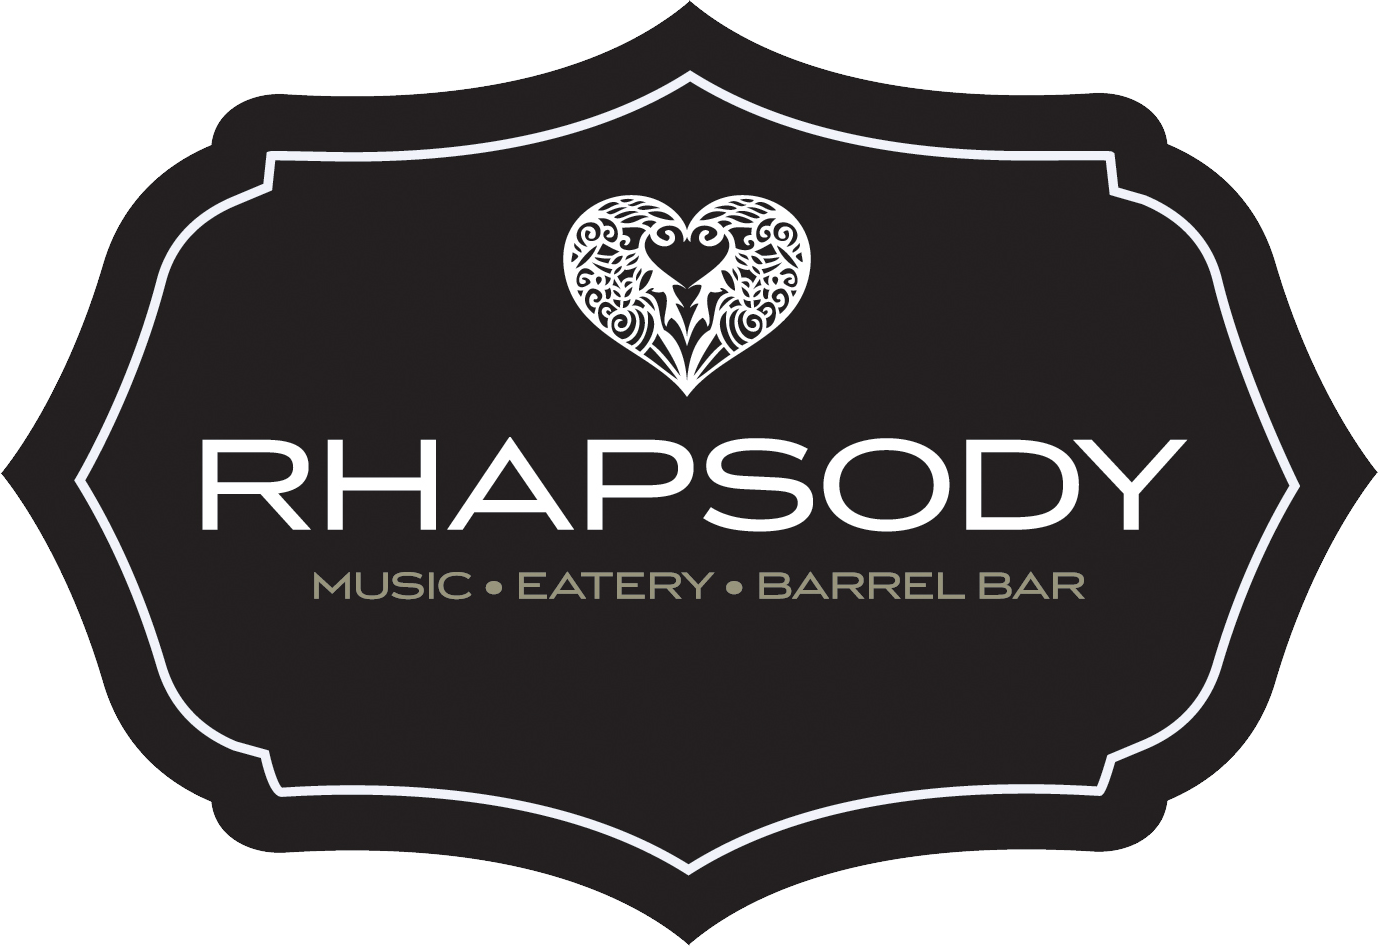 Rhapsody Barrel Bar in Kitchener, ON